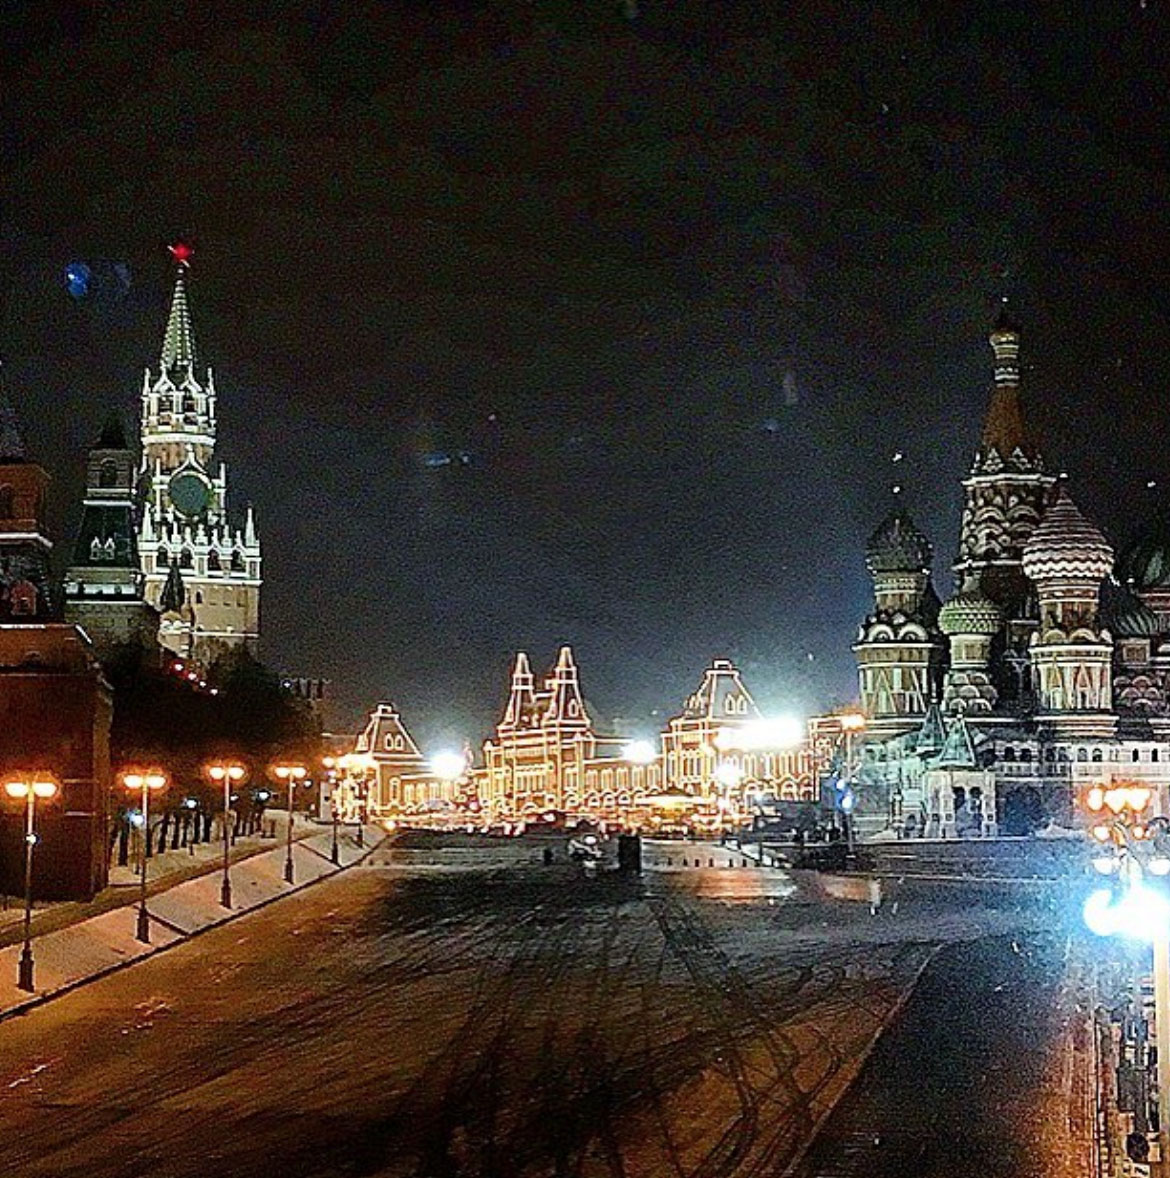 Picture of the Red Square in Russia at night